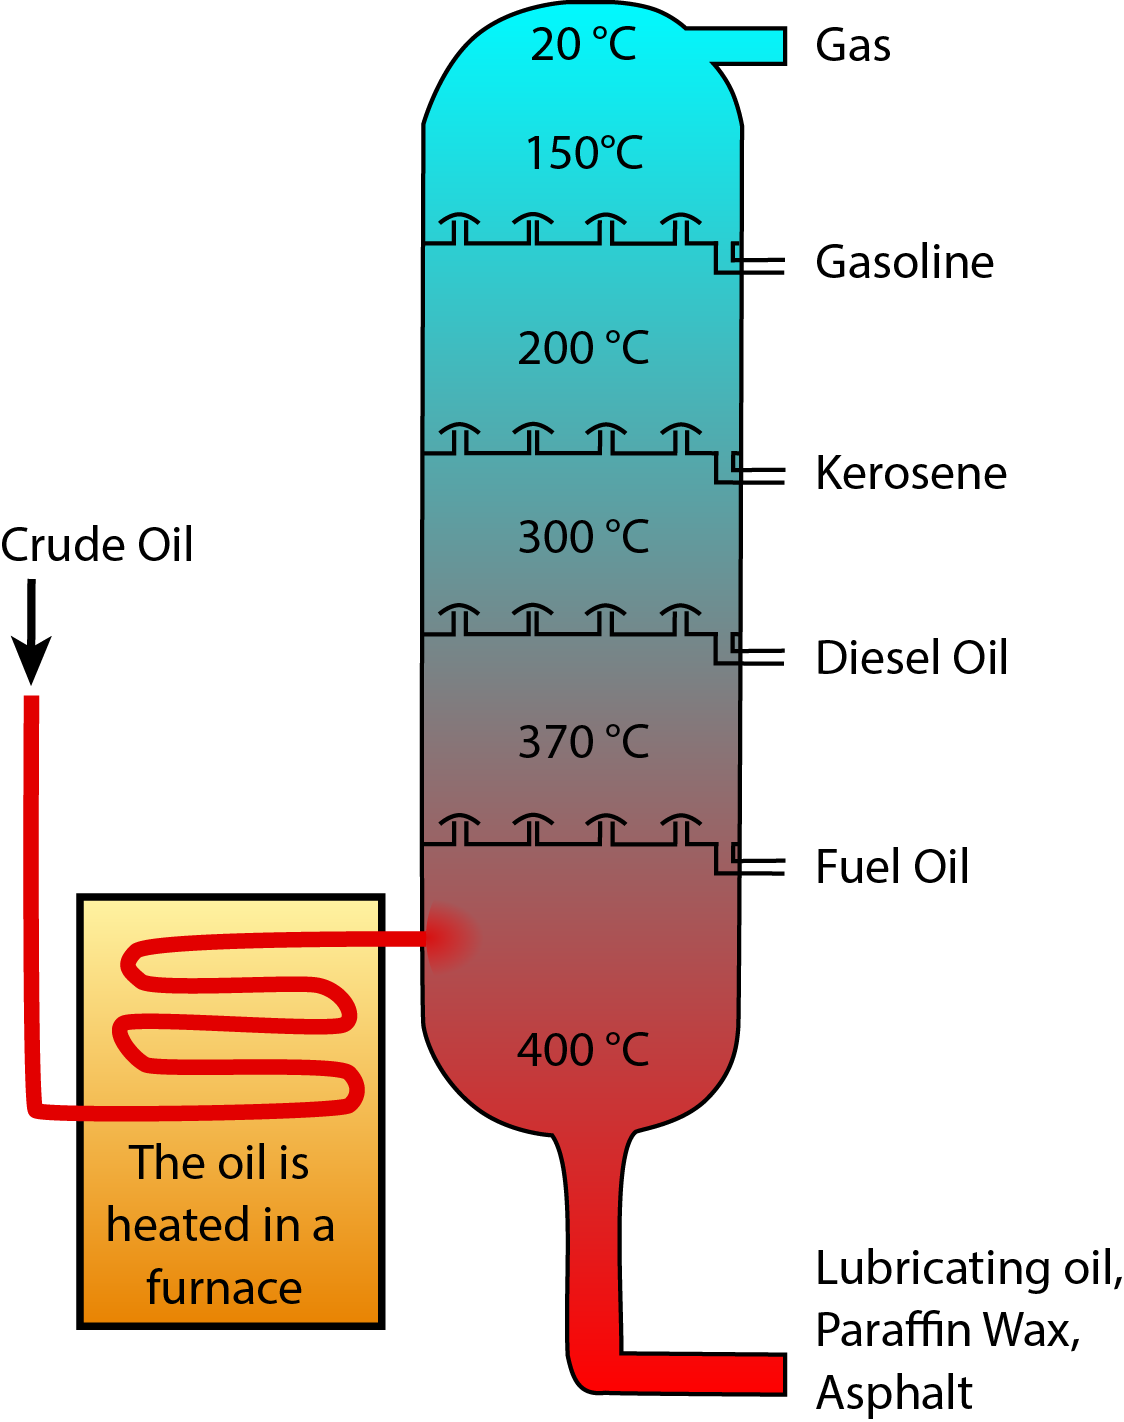 Oil Refining and Gas Processing | American Geosciences Institute